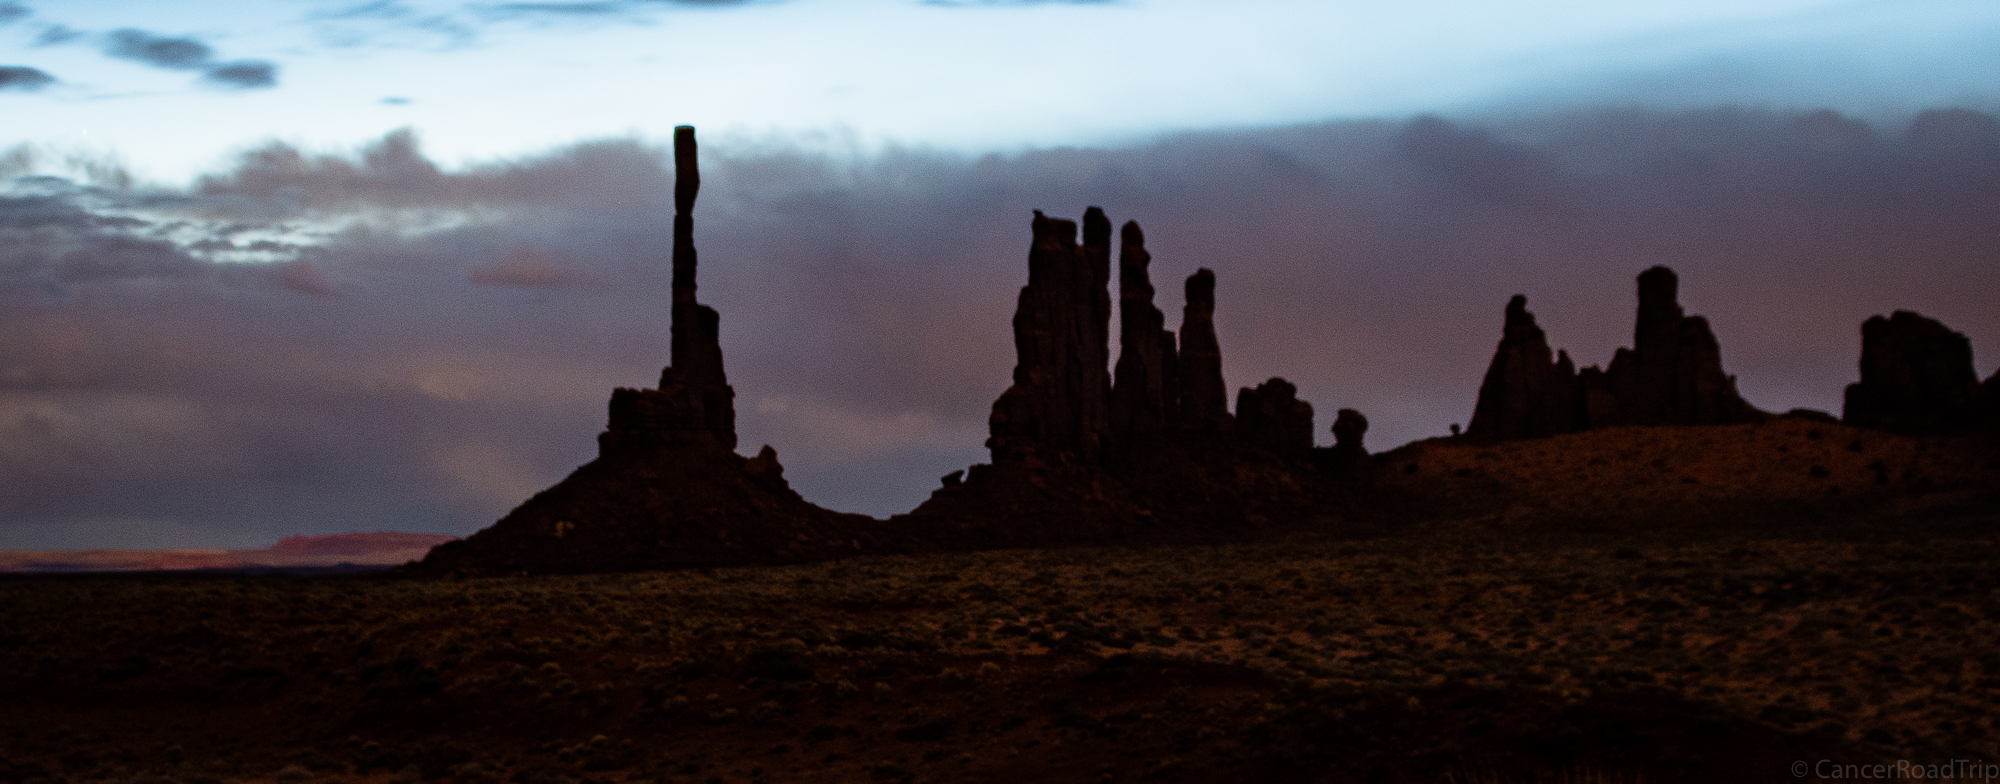 monument valley photo tours, monument valley photography tours,